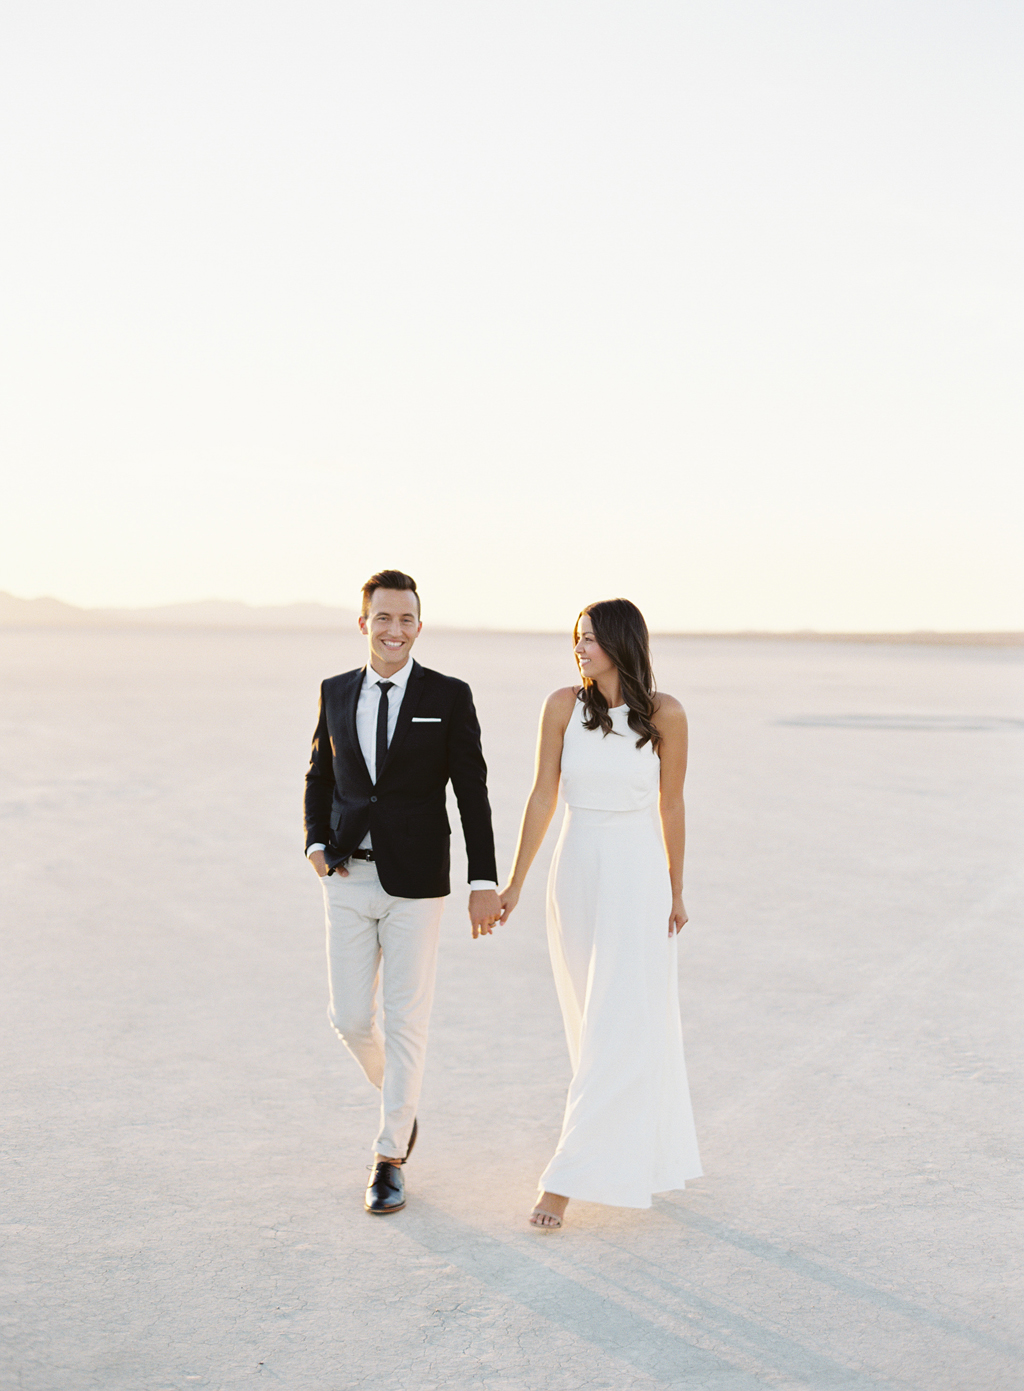 brandon and kristin kidd walk through the california desert.